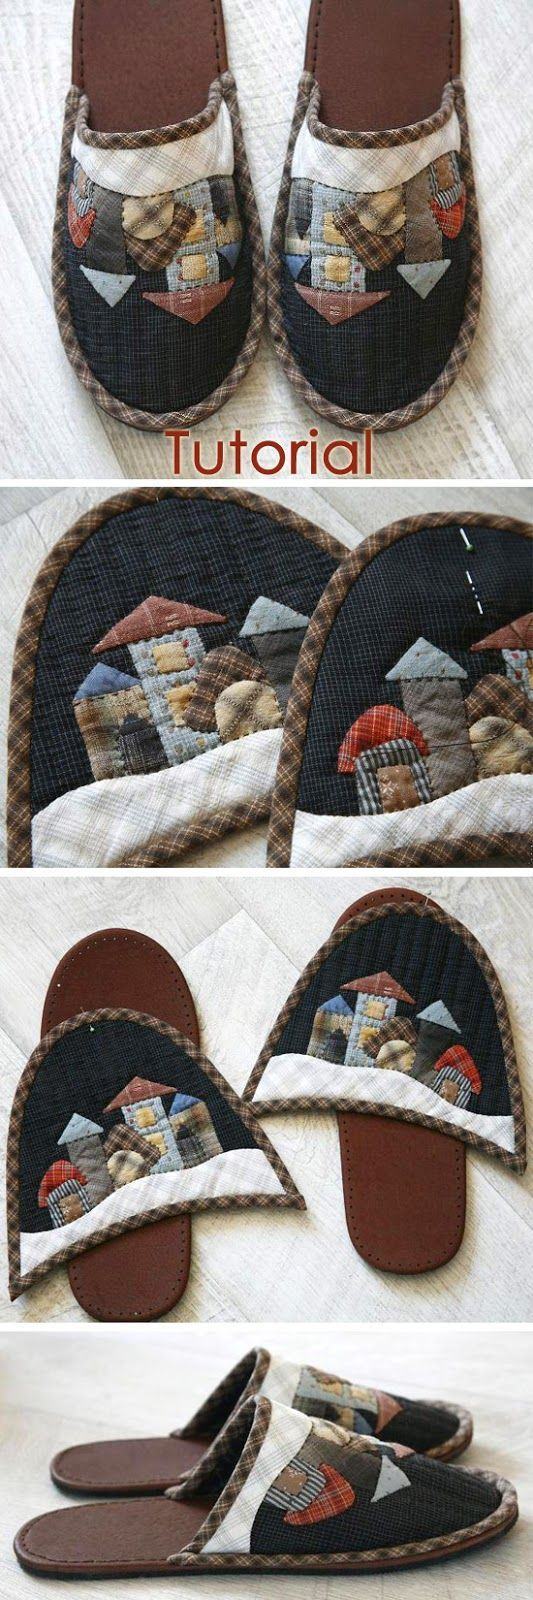 Sew cozy slippers. Quilting and patchwork. DIY tutorial in pictures. Шьем уютные домашние тапочки http://www.handmadiya.com/2015/09/patchwork-slippers-tutorial.html: